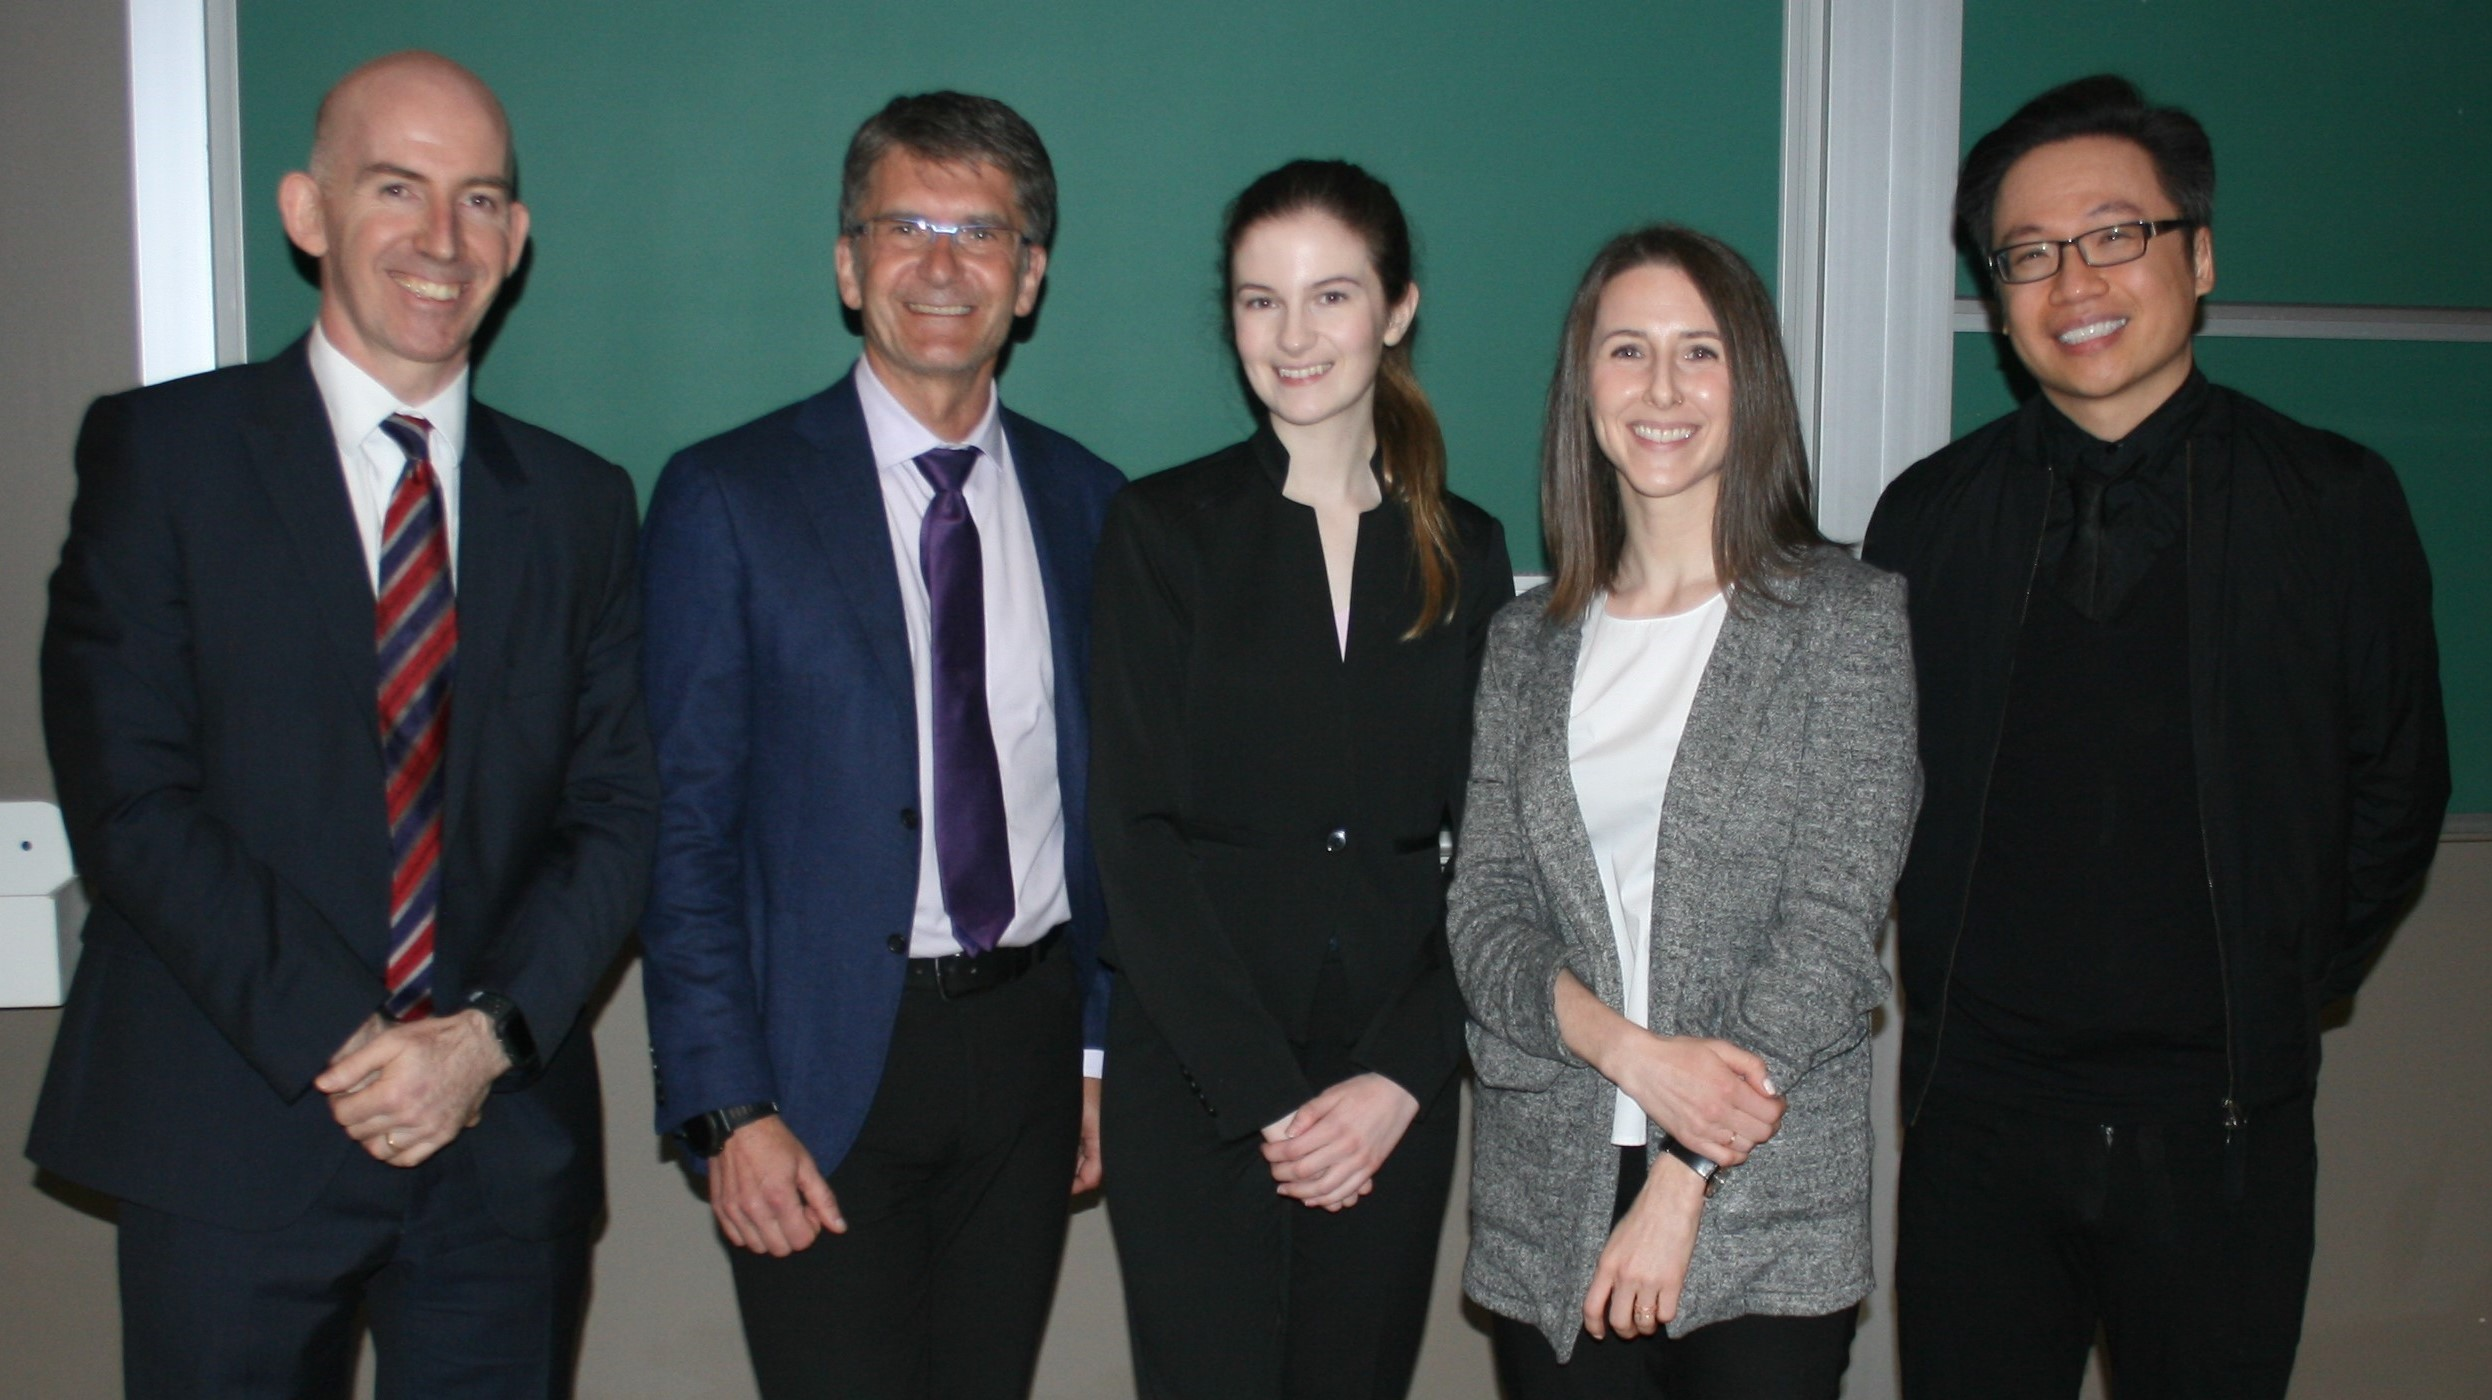 2018 Gary Johnson Research Day: (left to right) Dr. Colin McCartney, Dr. Greg Bryson, Jenna McNeil (BSc candidate), Dr. Kaitlin Duncan (PGY5) and Dr. De QH Tran